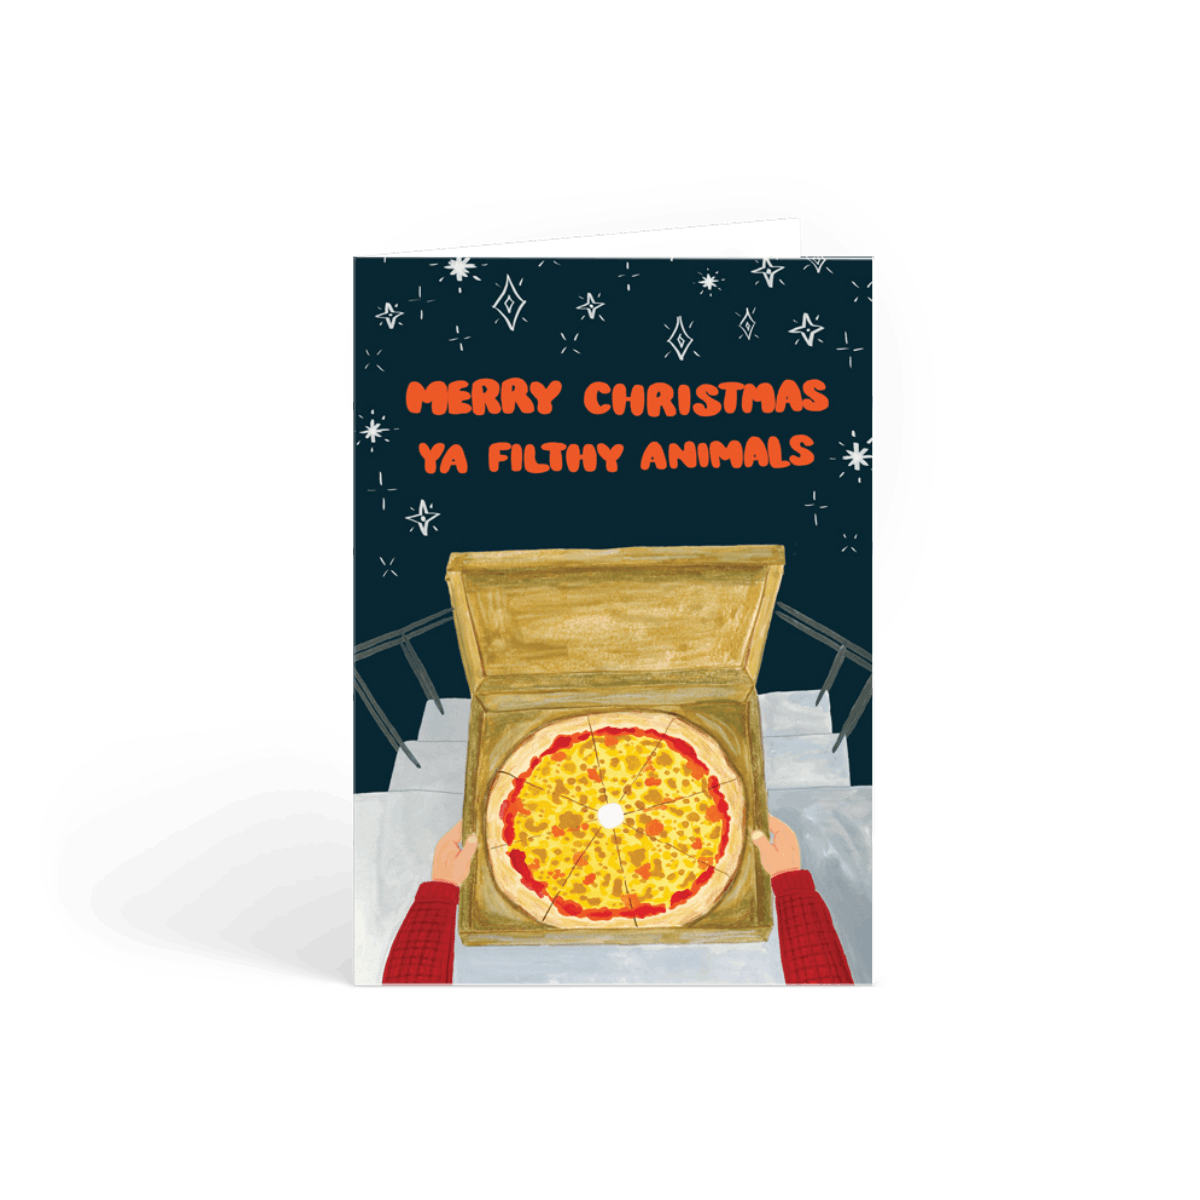 Https%3a%2f%2fwww.papier.com%2fproduct image%2f92205%2f2%2fmerry christmas filthy animals 23017 front 1570804676.png?ixlib=rb 1.1